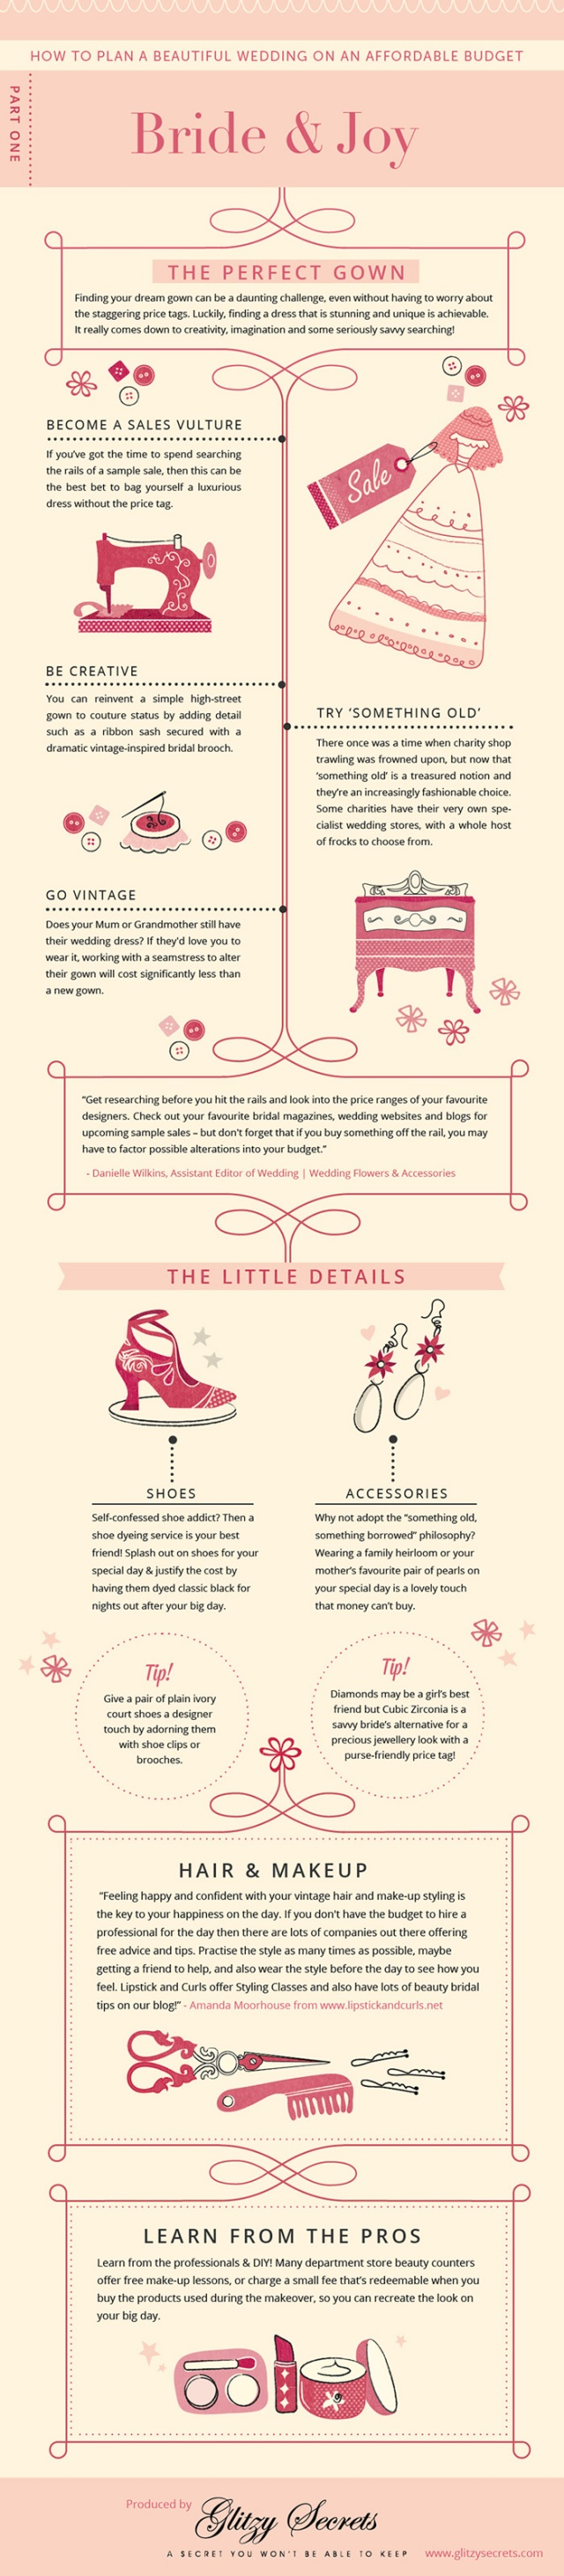 wedding-infographic-glitzy-secrets-bride-and-joy-2014